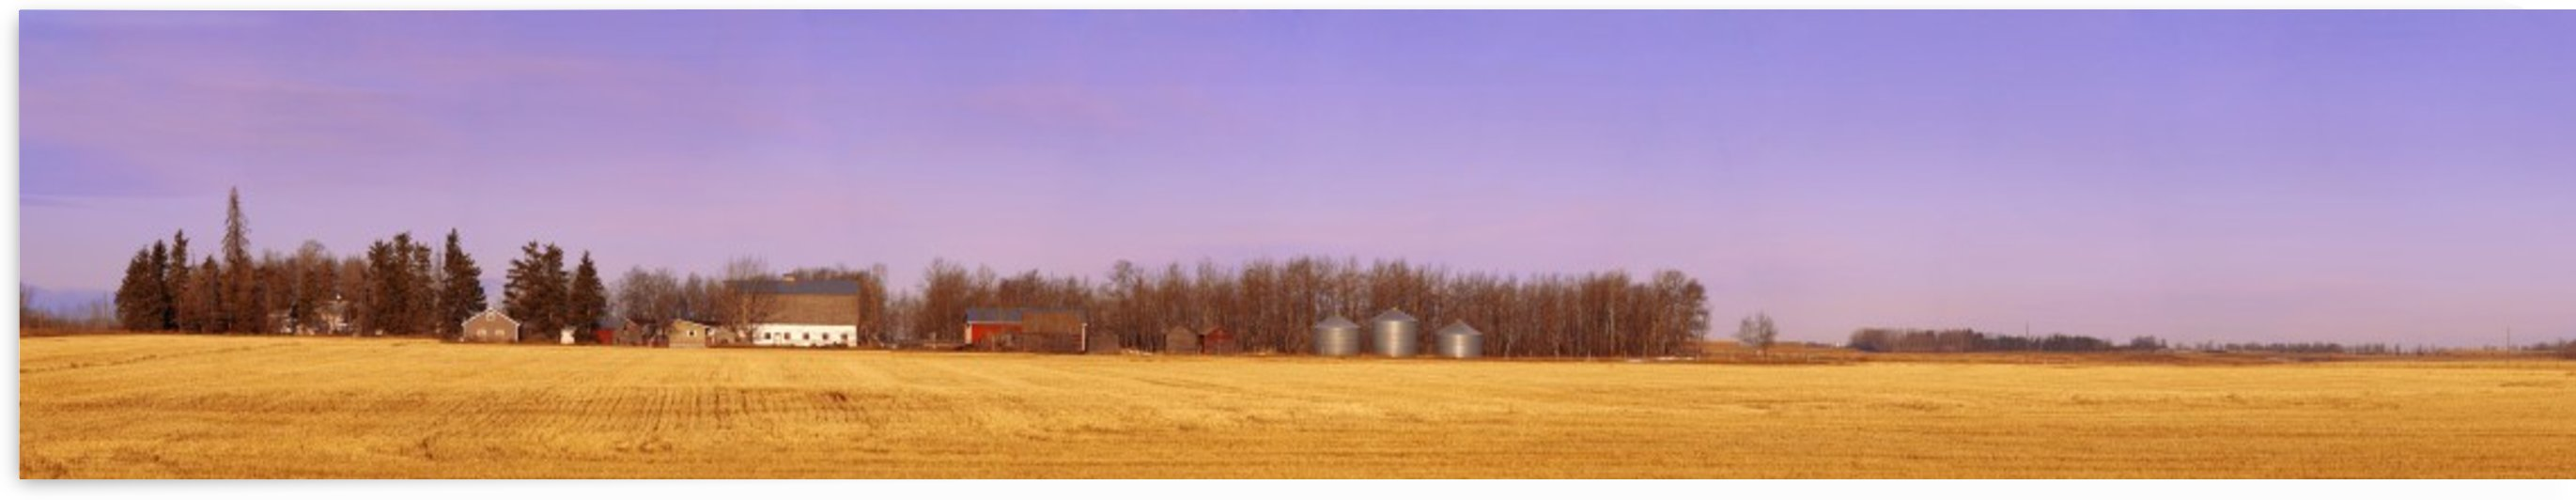 Farm Scene North Of Calgary, Alberta by PacificStock